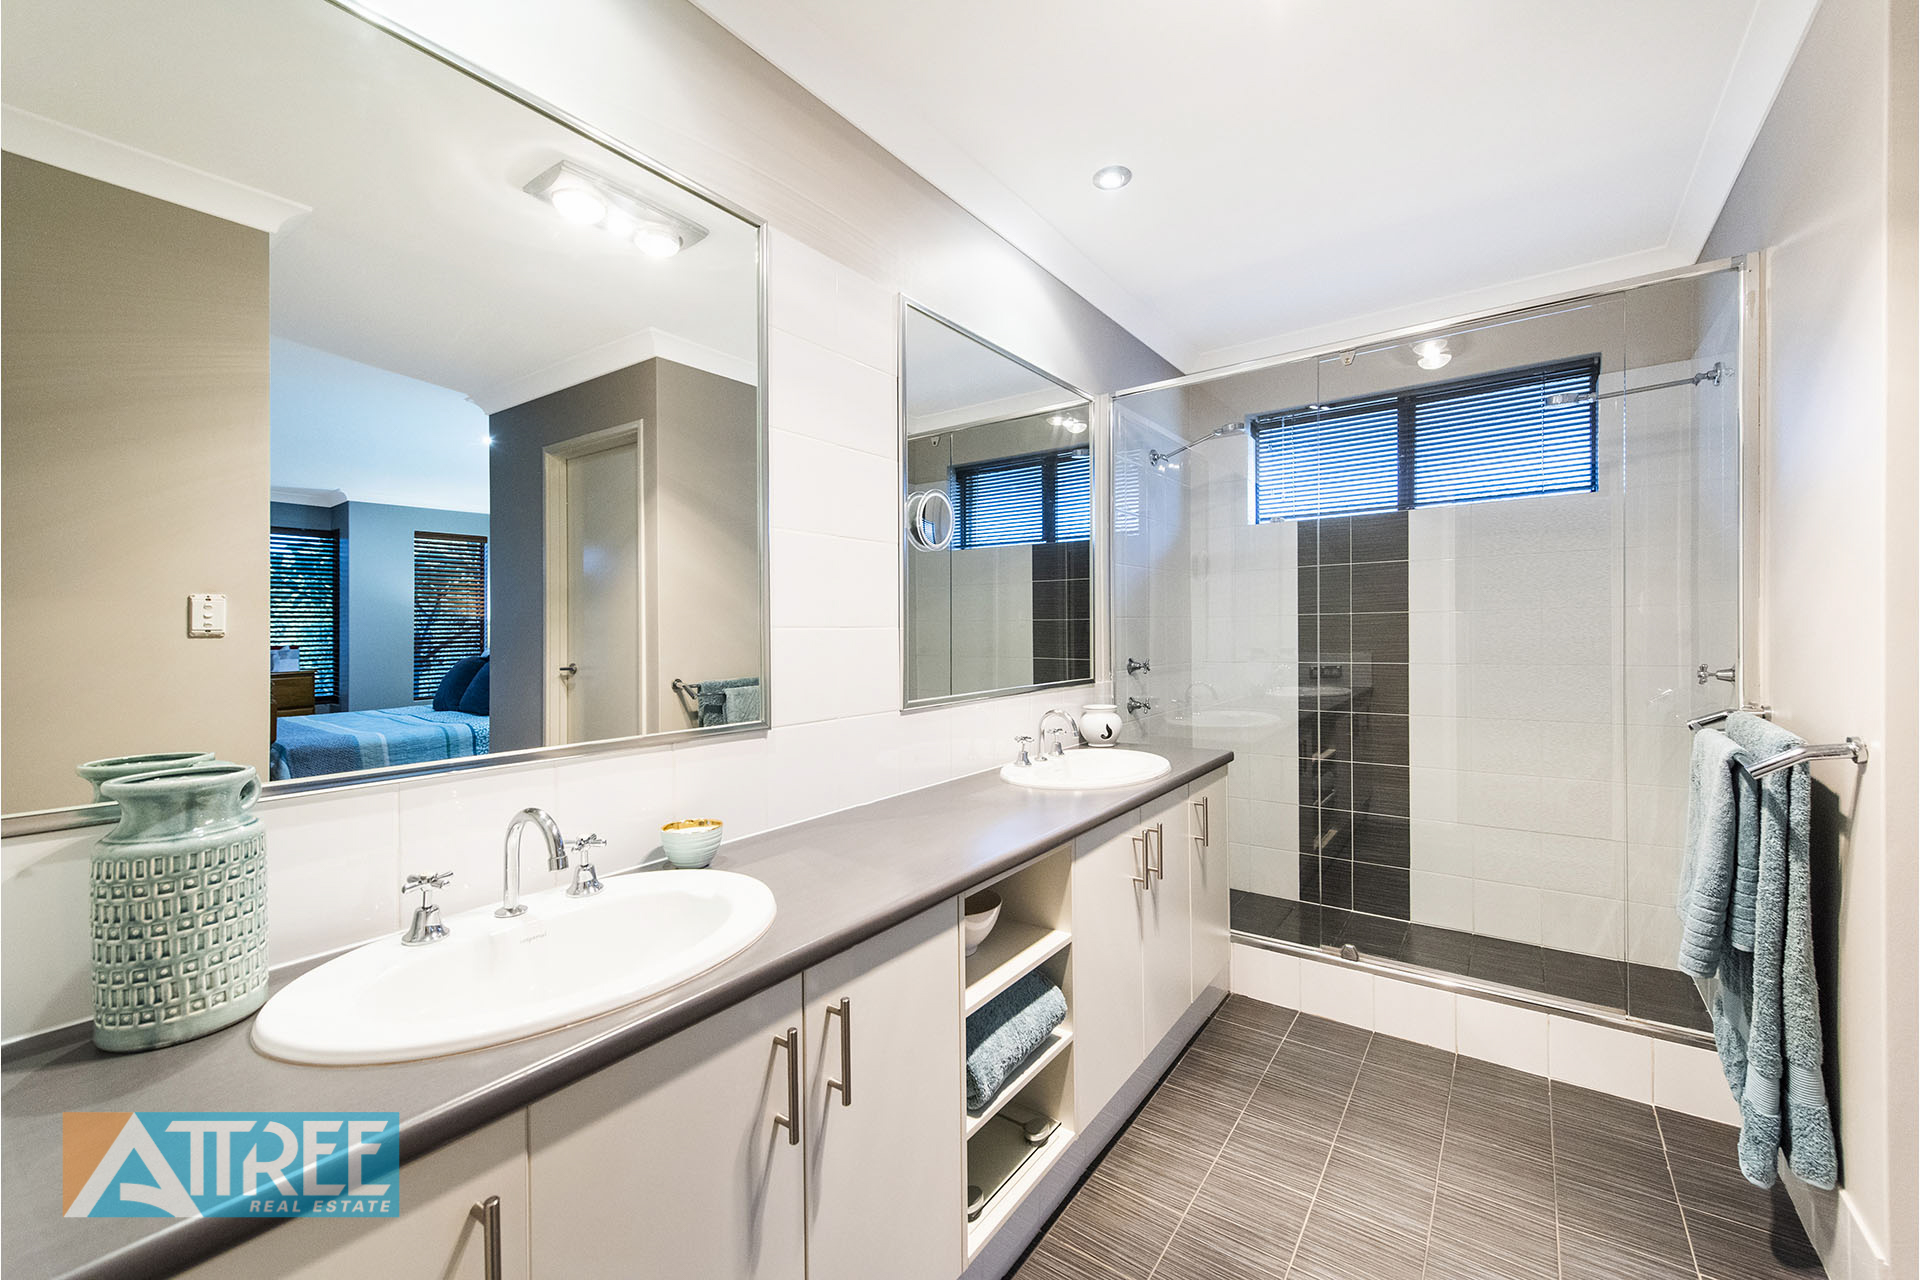 Property for sale in HARRISDALE, 7 Diamond Way : Attree Real Estate